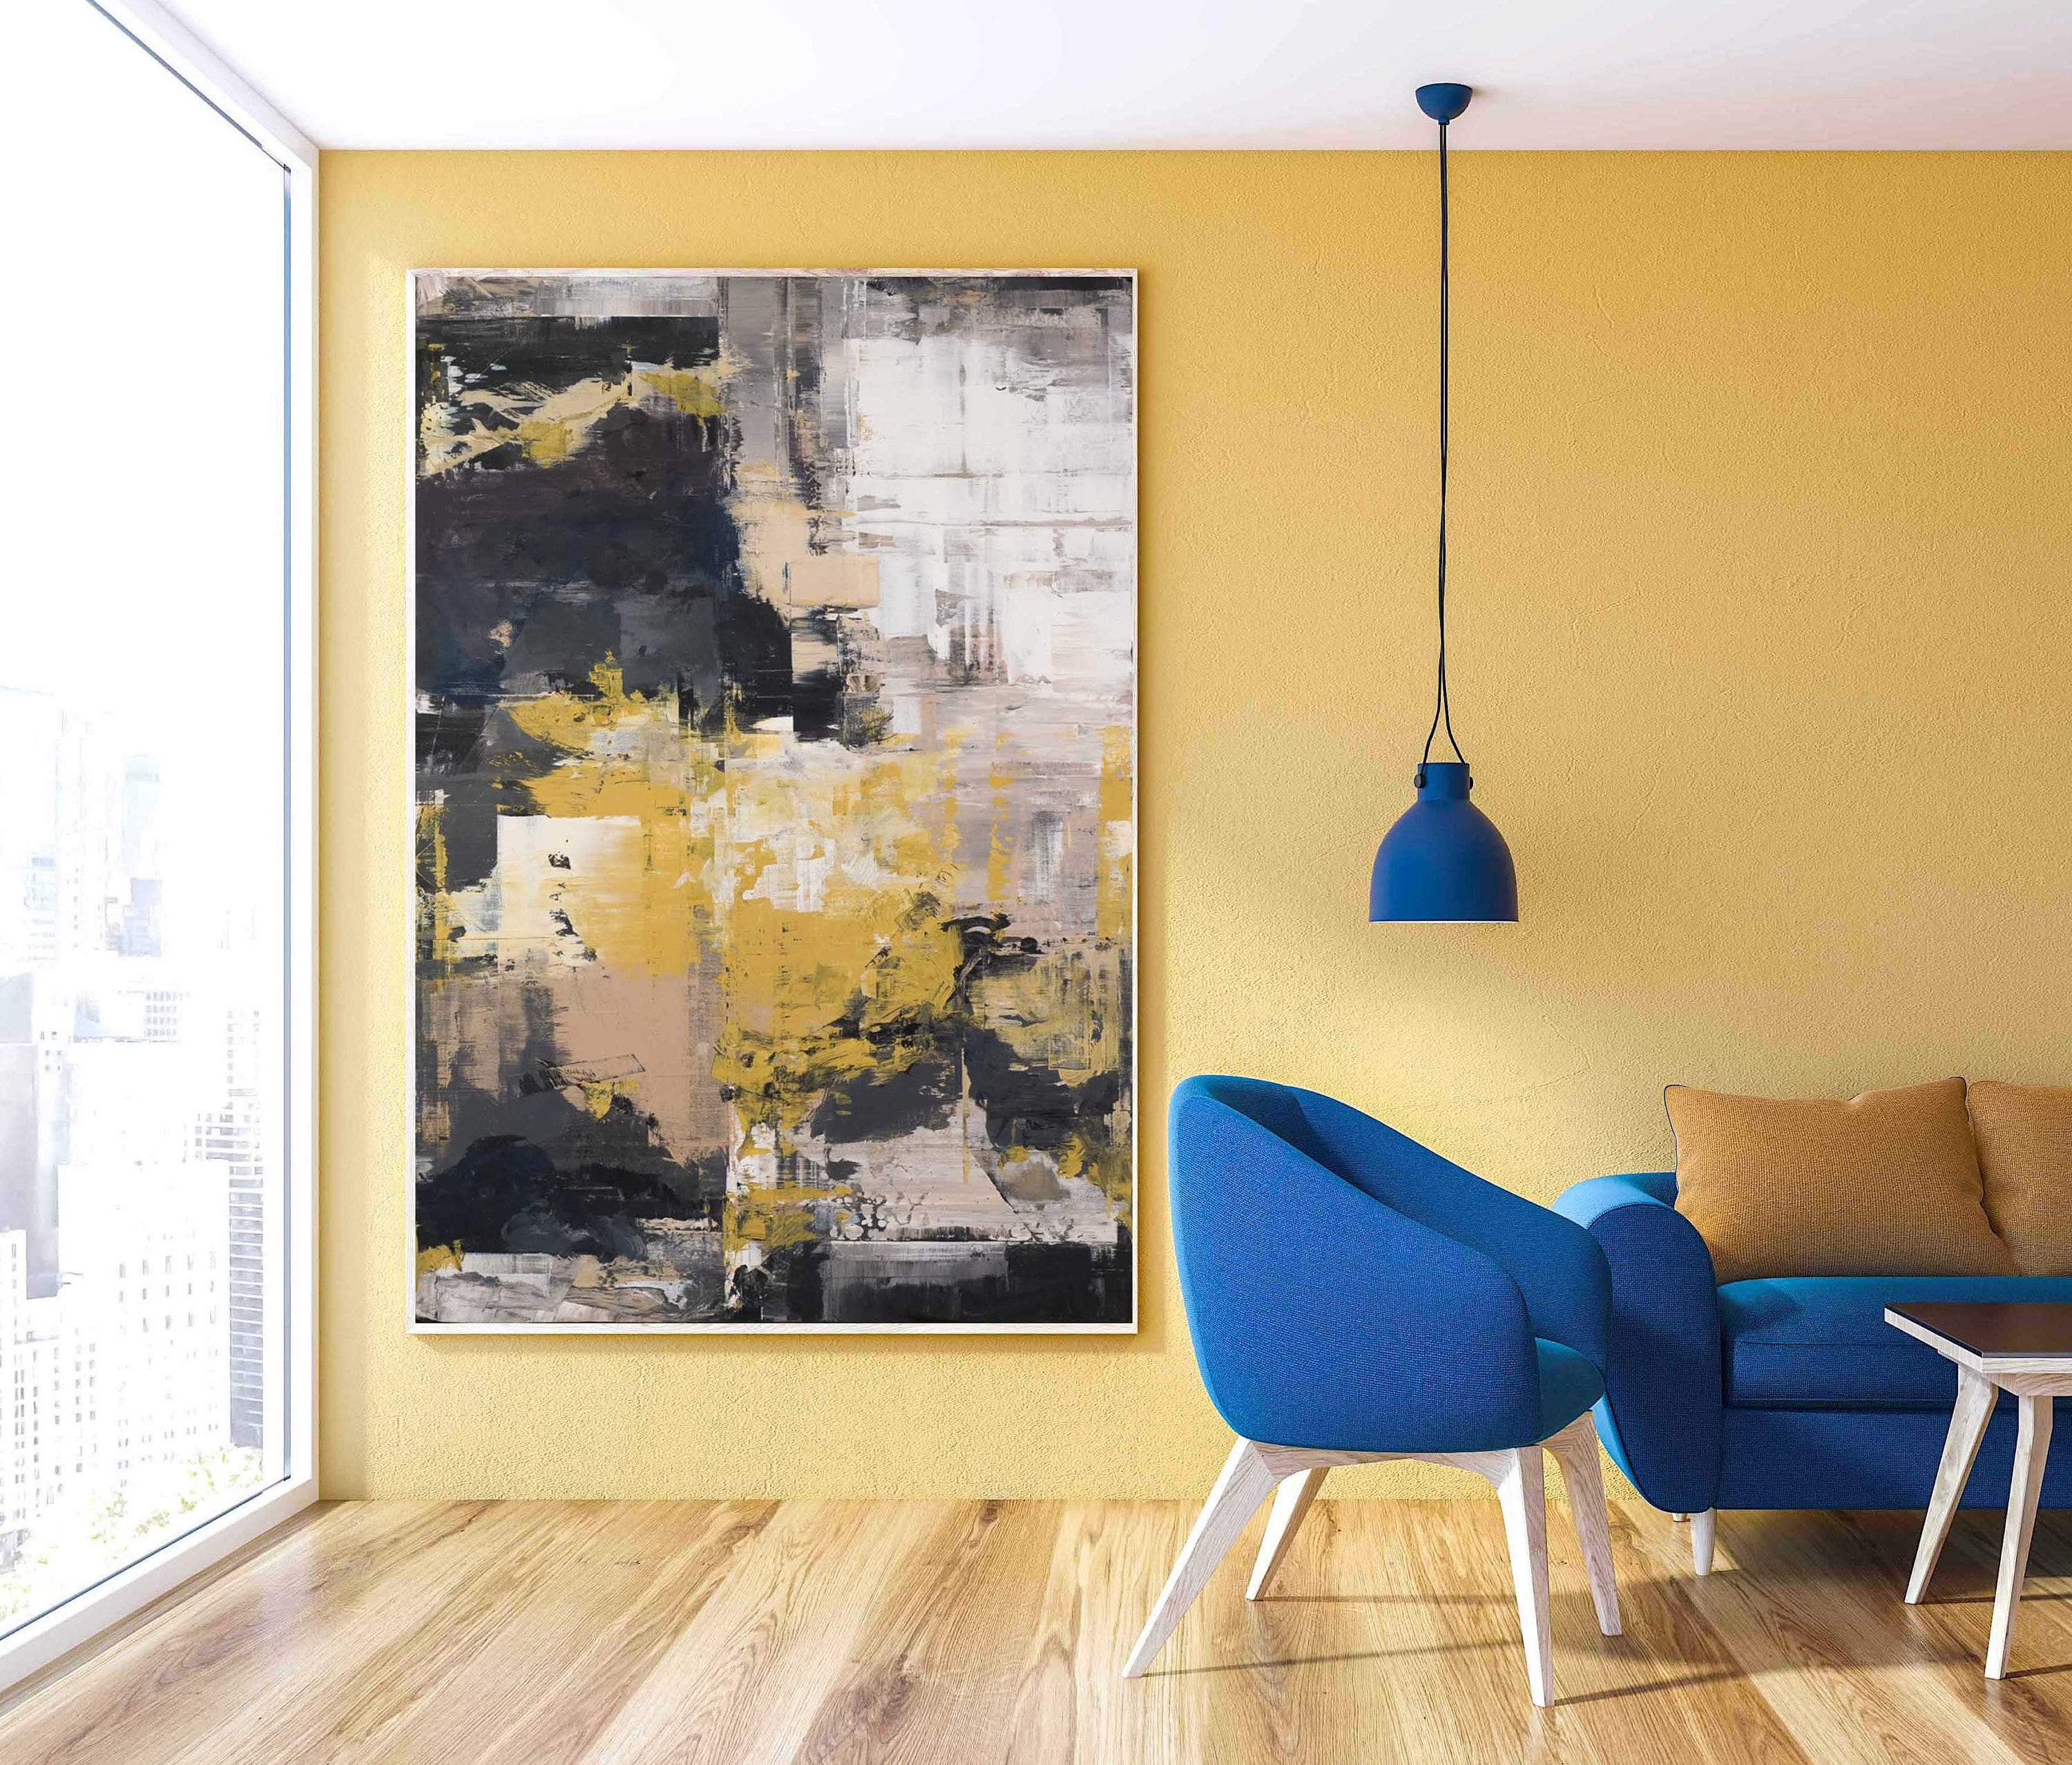 Large Abstract Oil Painting On Canvas For Living Room Home Deconate